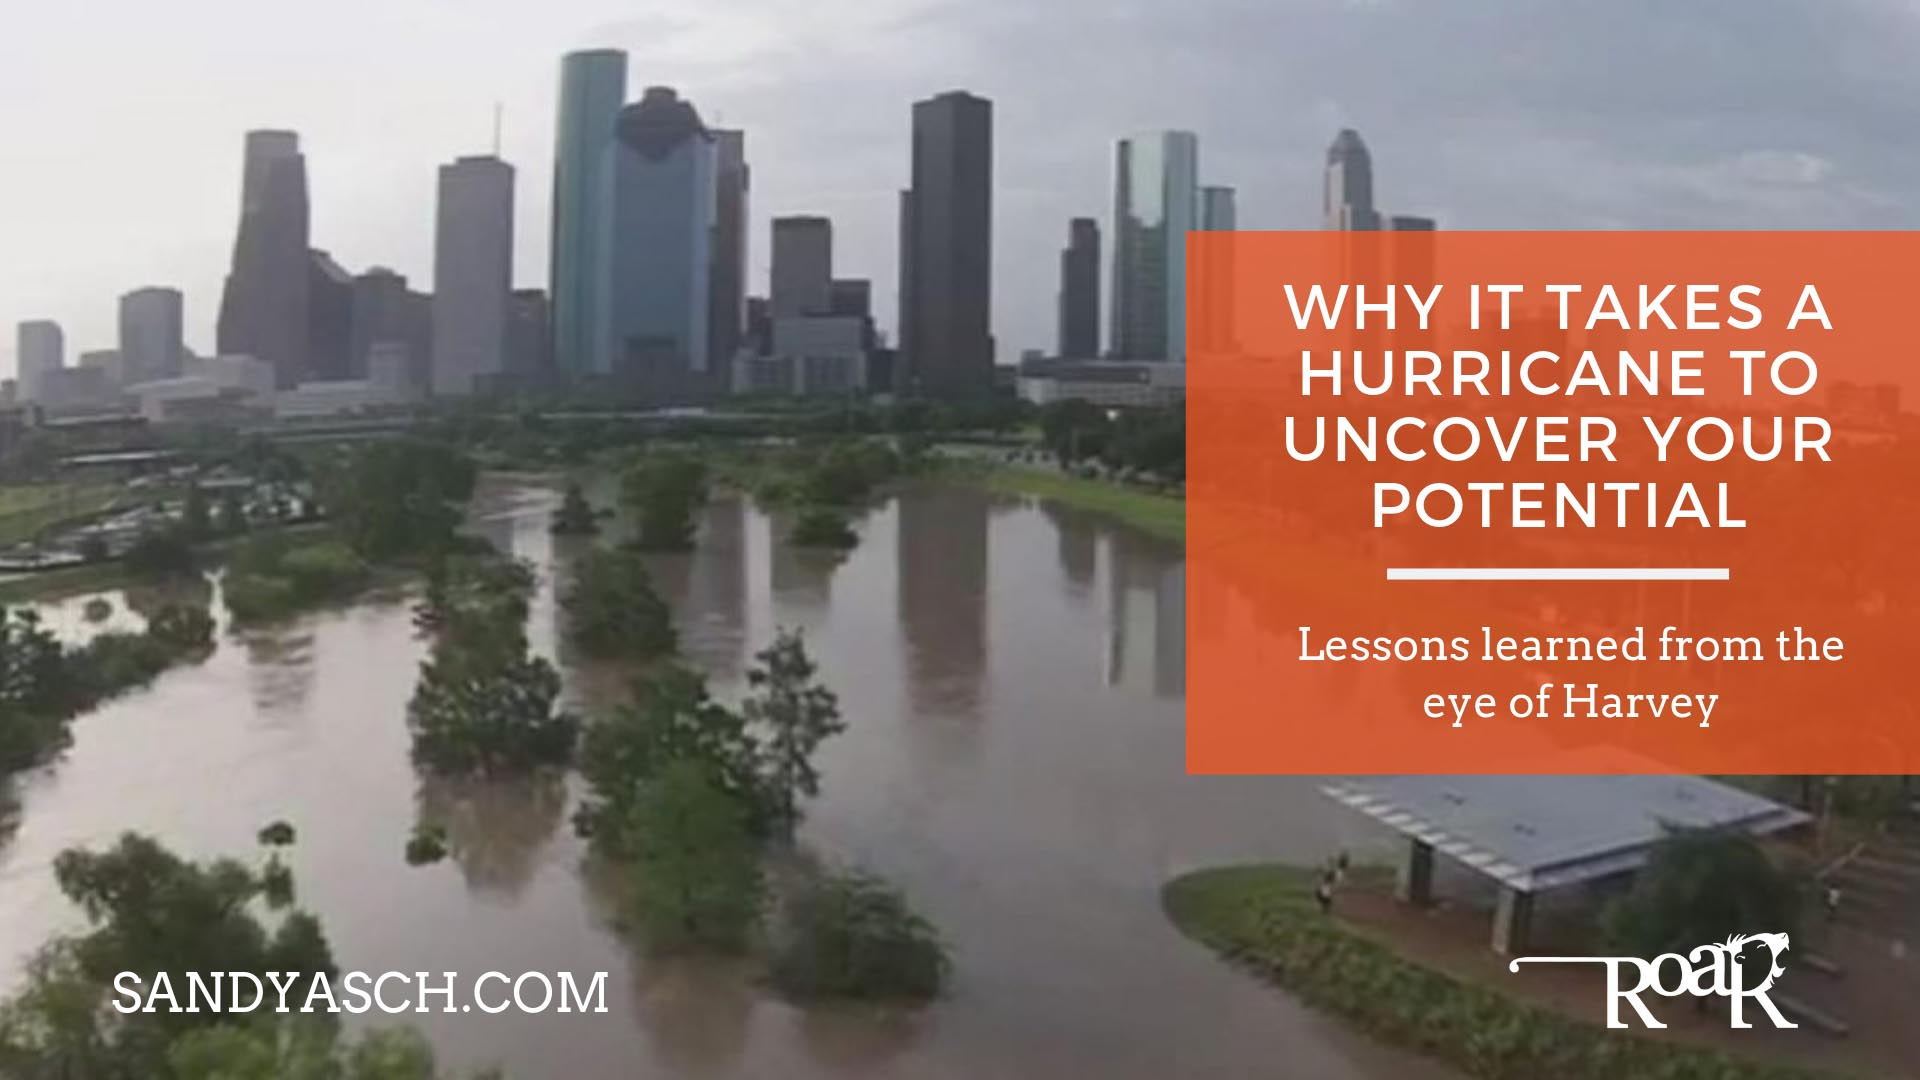 Why It Takes A Hurricane To Uncover Your Potential: Lessons Learned From The Eye of Harvey